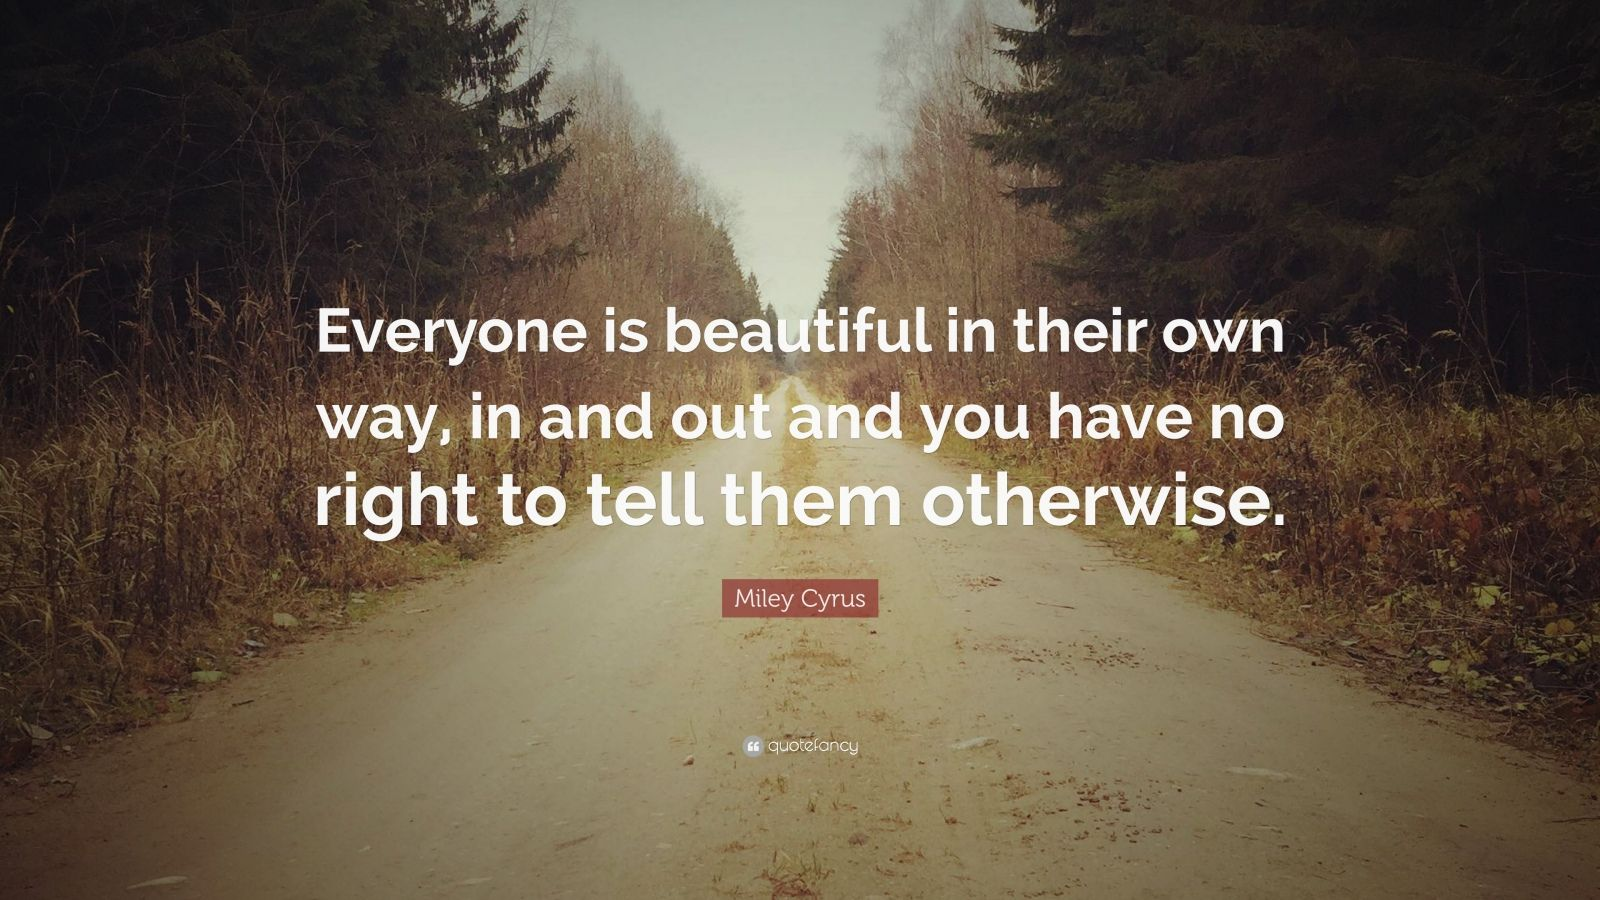 Mother Teresa Quotes Wallpapers Miley Cyrus Quote Everyone Is Beautiful In Their Own Way